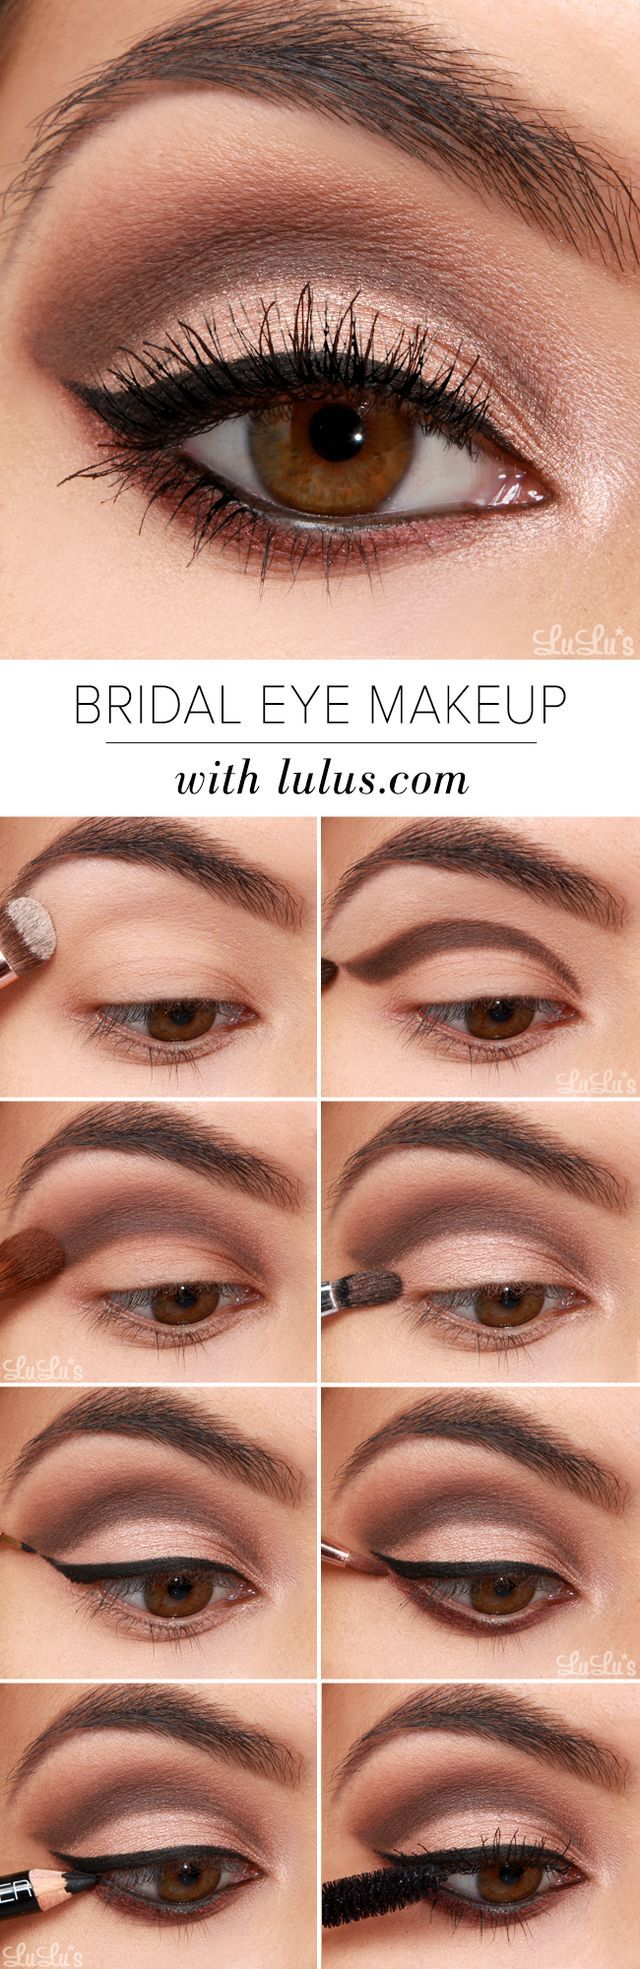 Whether you're a bride-to-be, or simply a lover of glamorous makeup looks, our Bridal Eye Makeup Tutorial will add an elegant touch to your special occasion! This lovely neutral eye includes shades of